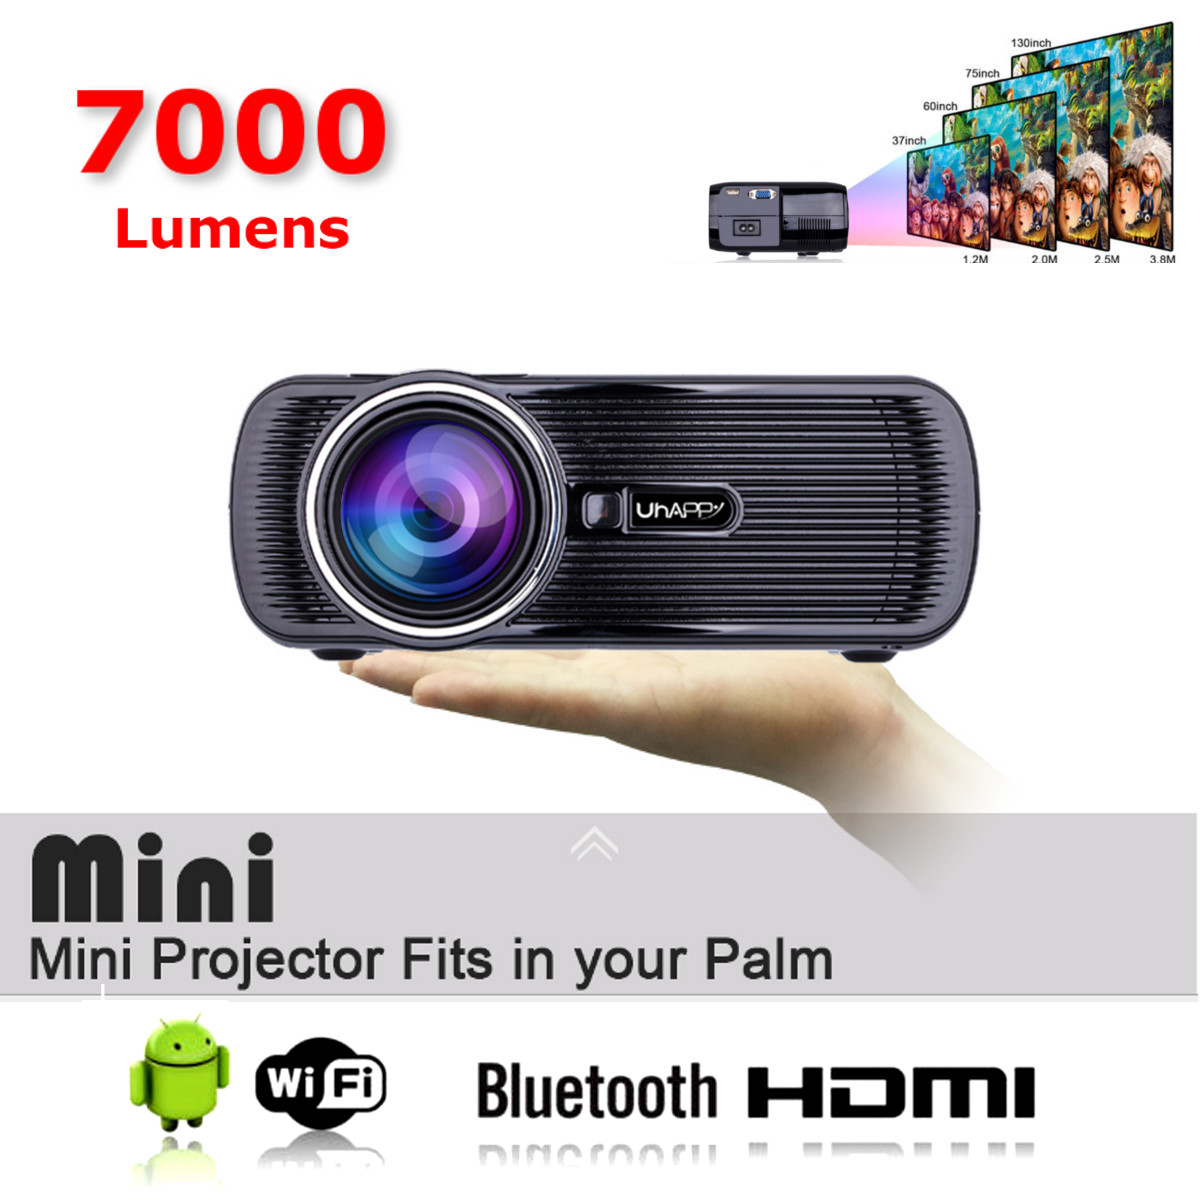 Mini WIFI 7000 Lumen 1080 P 3D HD LED Portatile Proiettore Home theater CinemaMini WIFI 7000 Lumen 1080 P 3D HD LED Portatile Proiettore Home theater Cinema